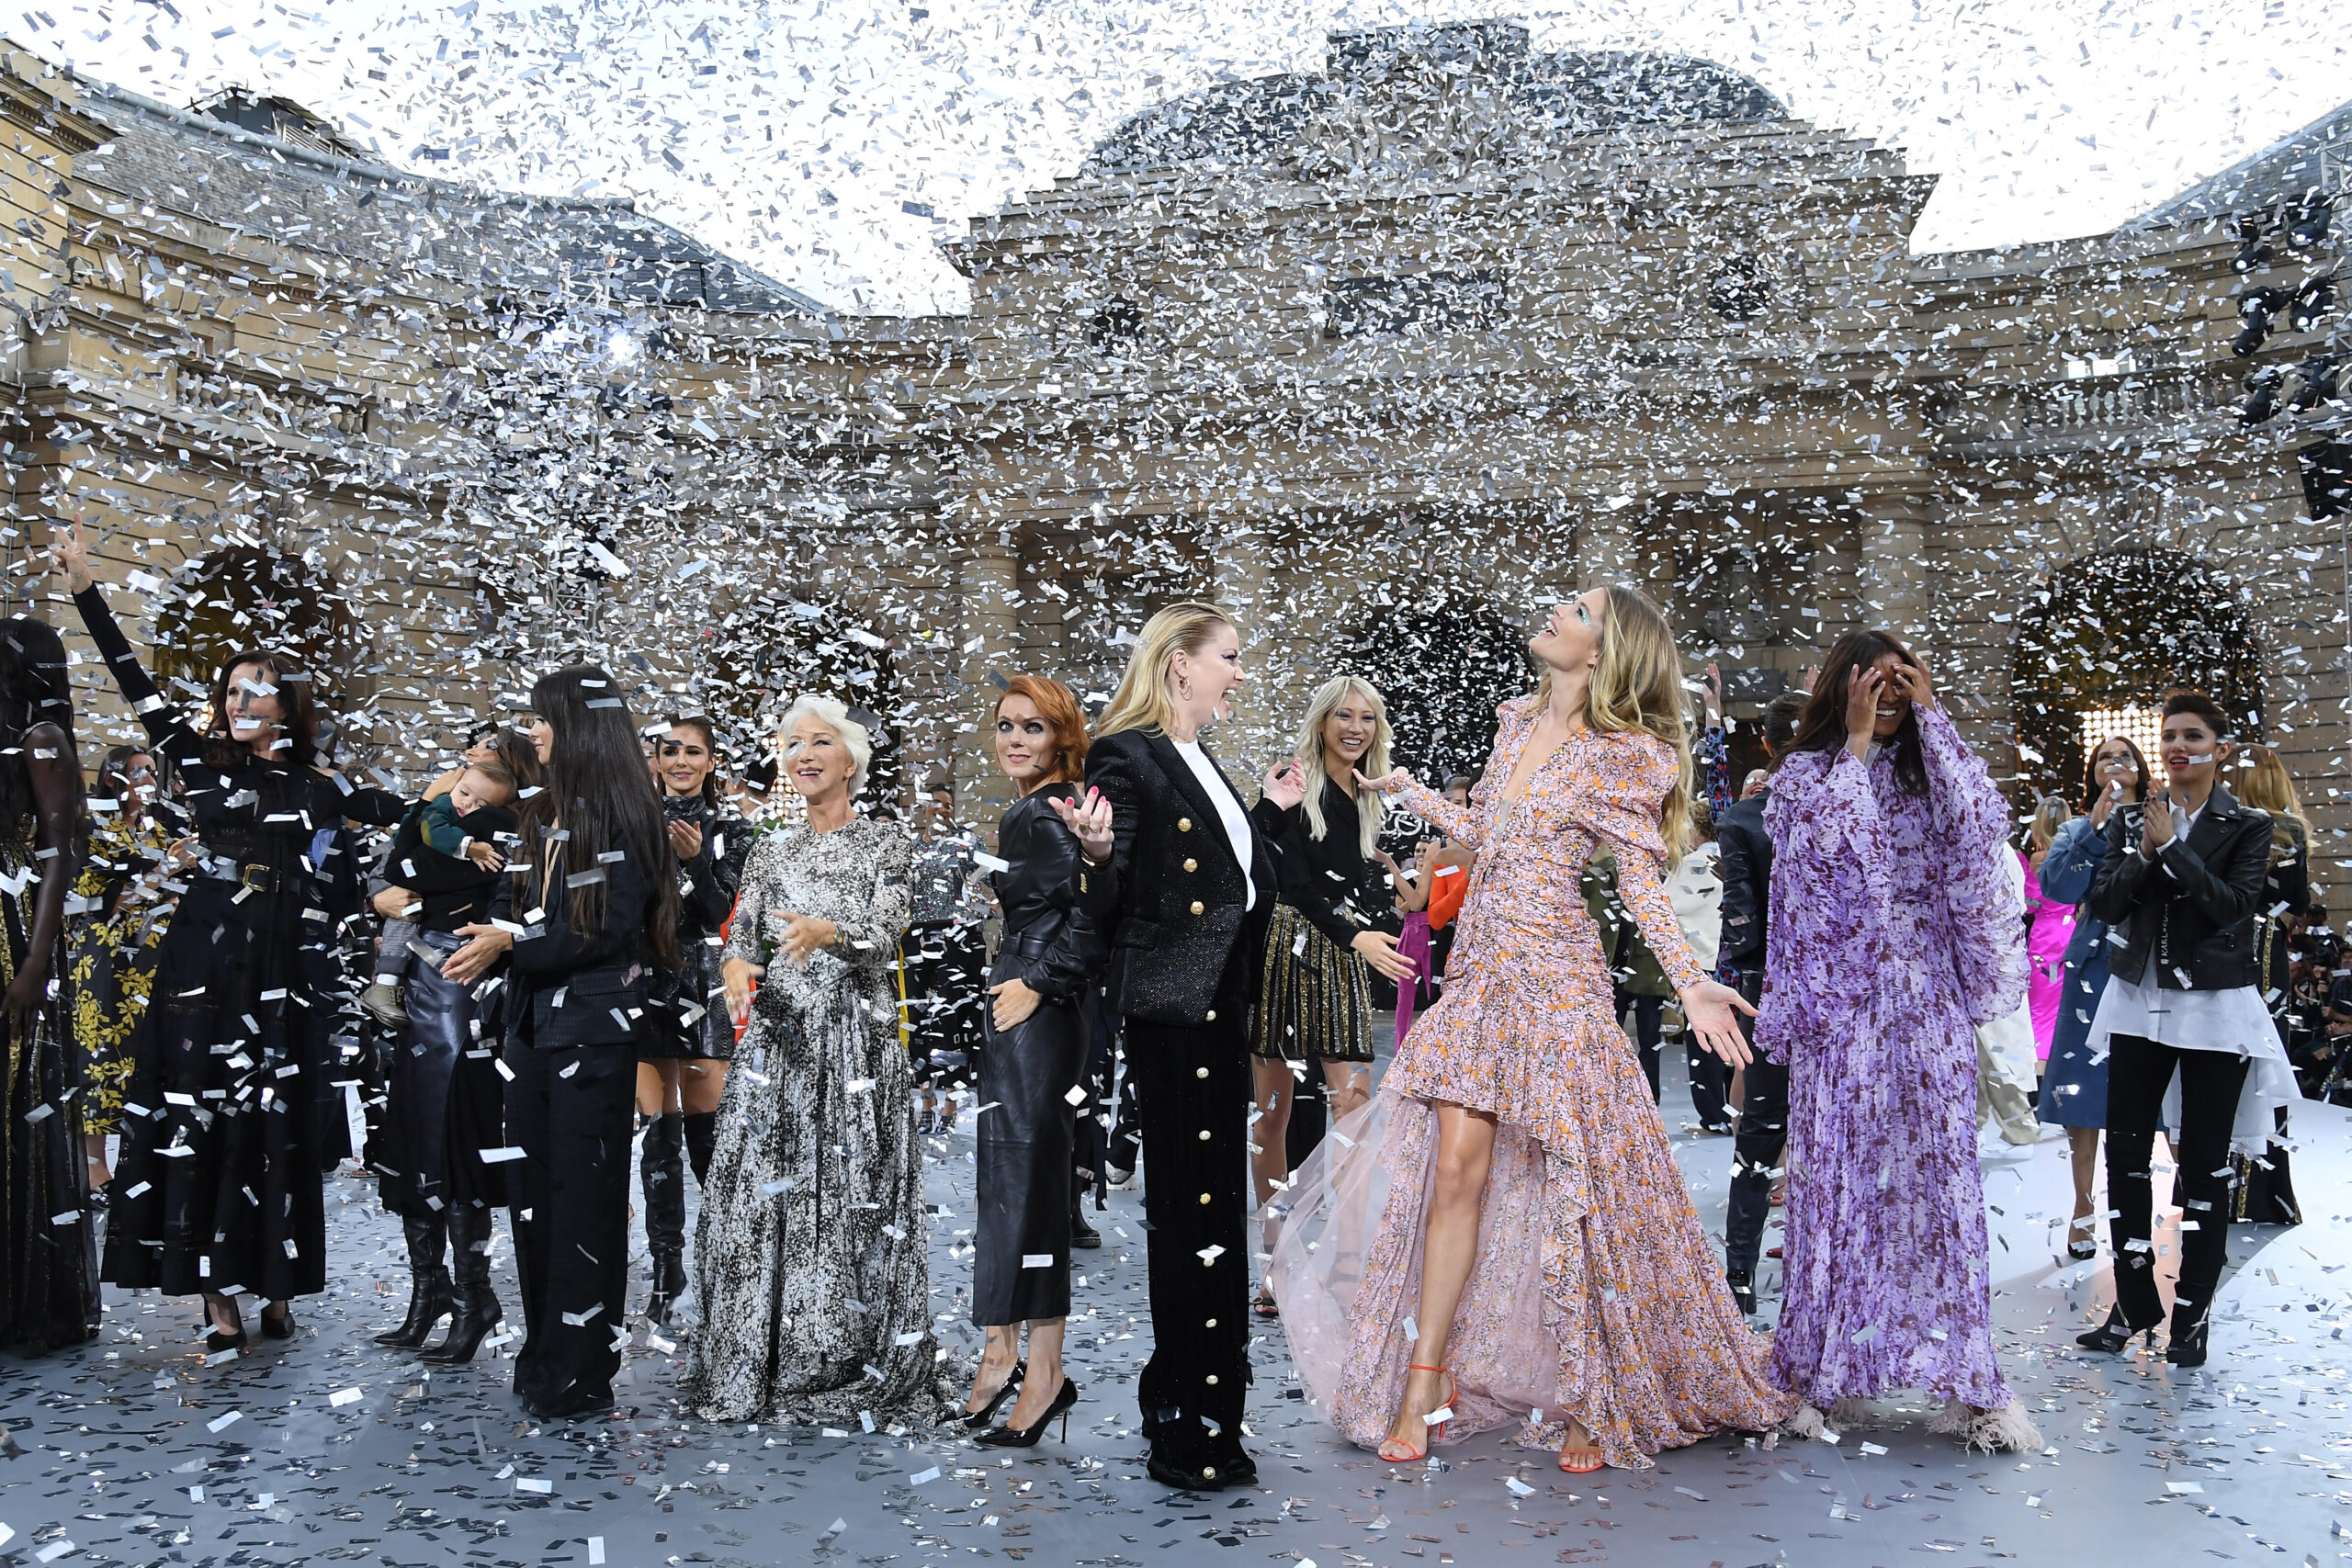 <i>Pascal Le Segretain/Getty</i><br/>The finale of L'Oreal's last physical show at Paris Fashion Week